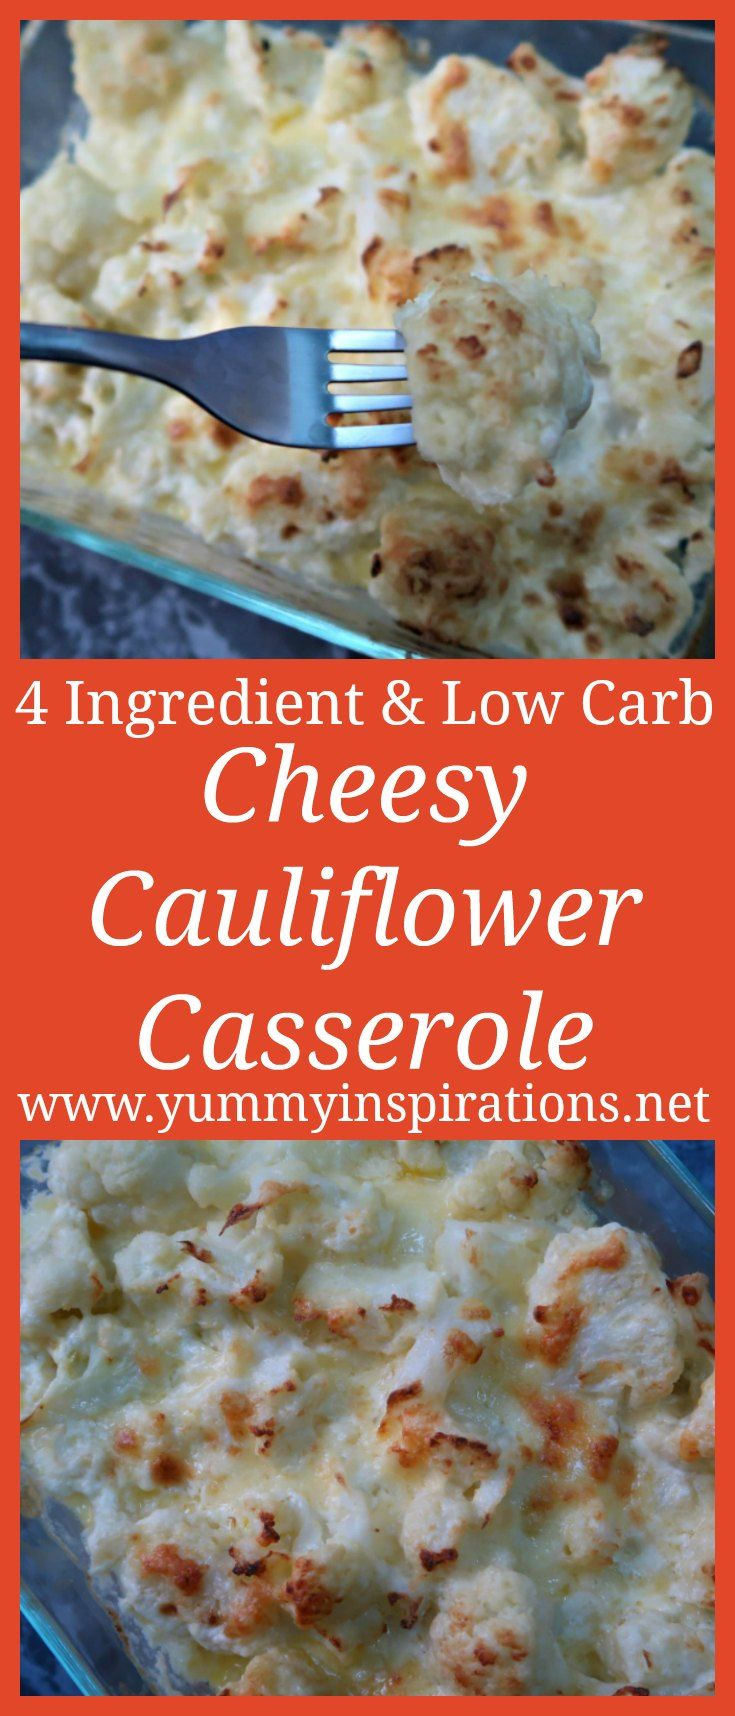 4 Ingredient Cheesy Low Carb Cauliflower Casserole images